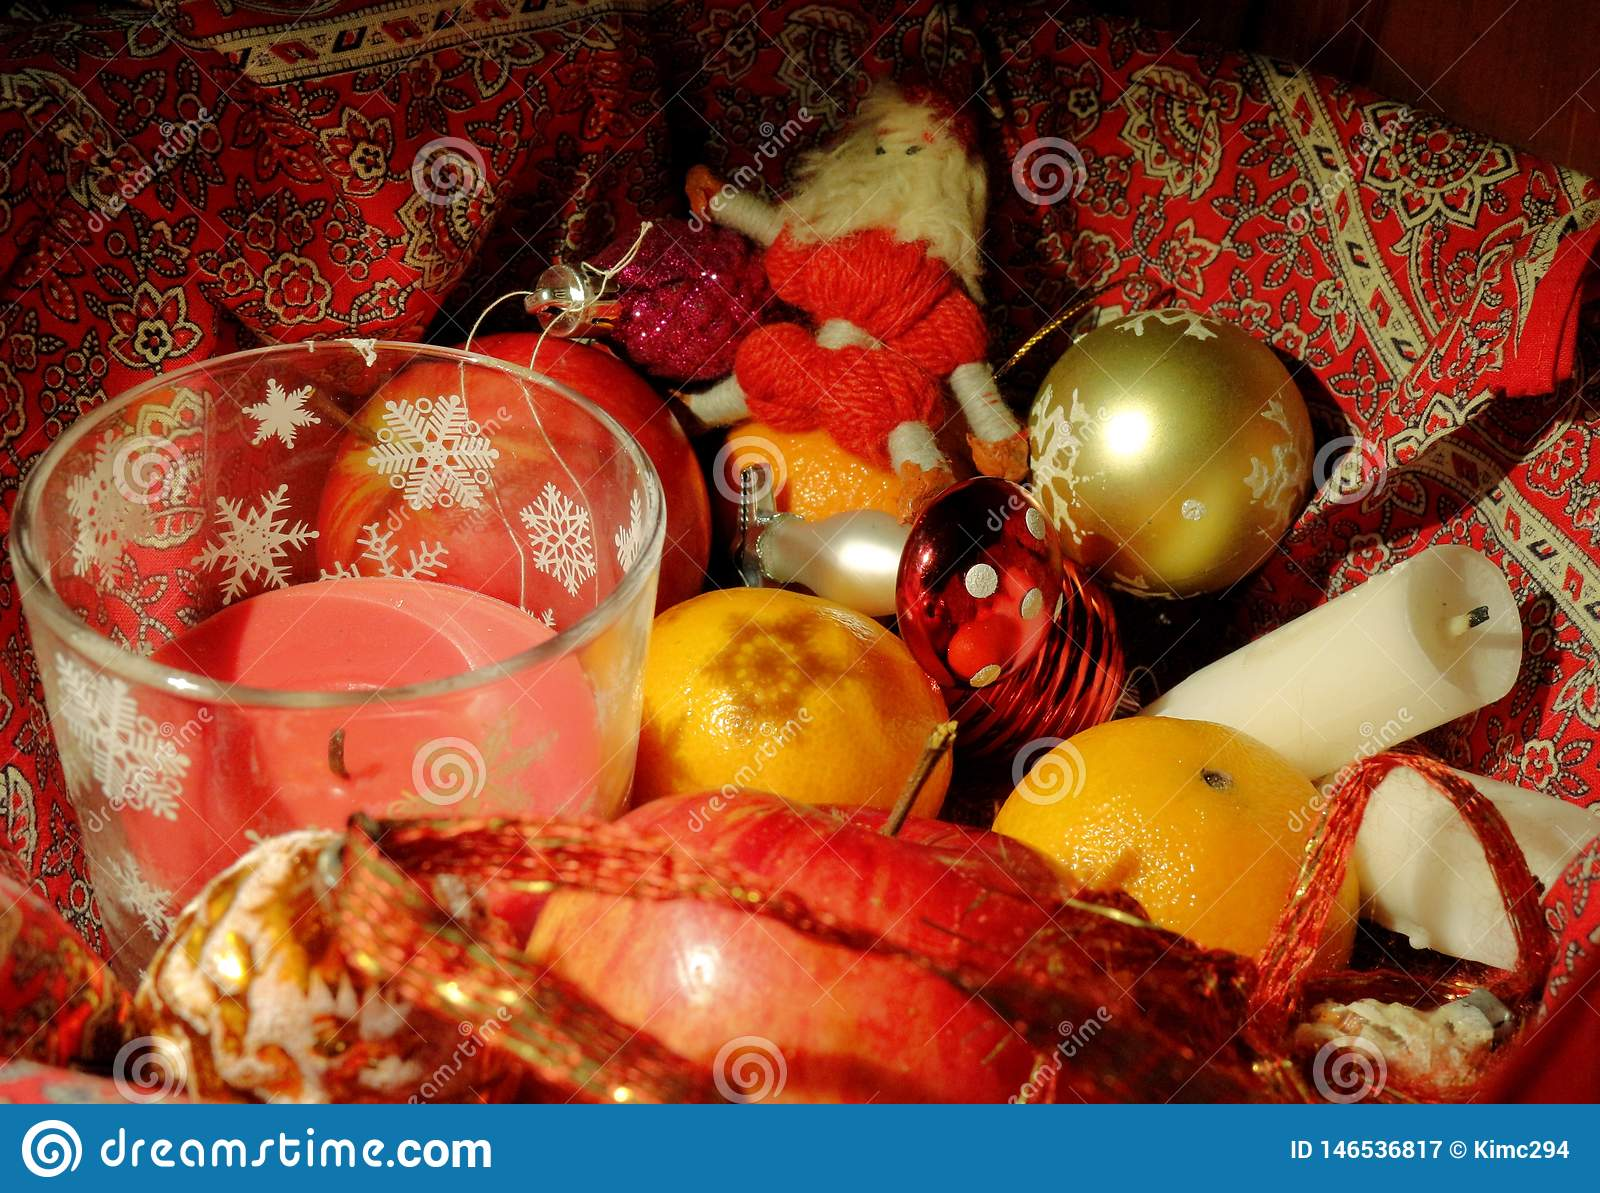 Christmas composition with fruit, candles and Christmas decor